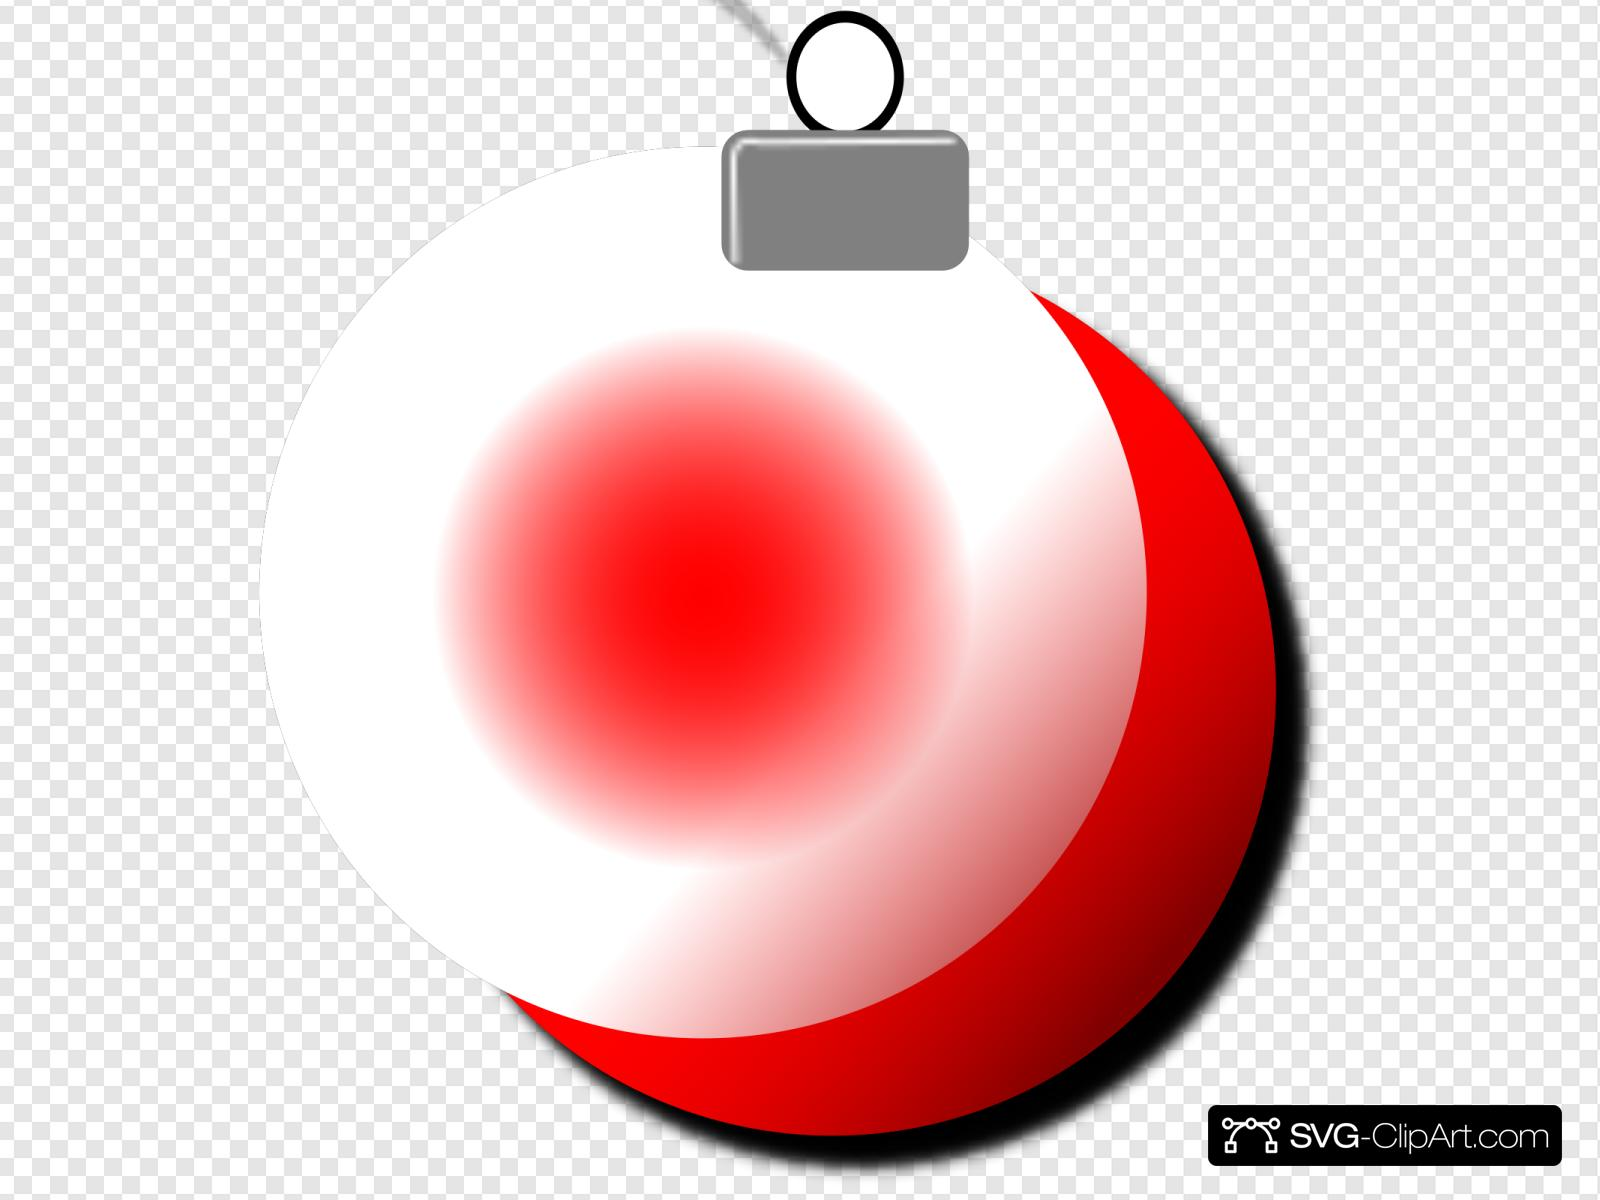 Red Christmas Ornament Svg Vector Red Christmas Ornament Clip Art Svg Clipart